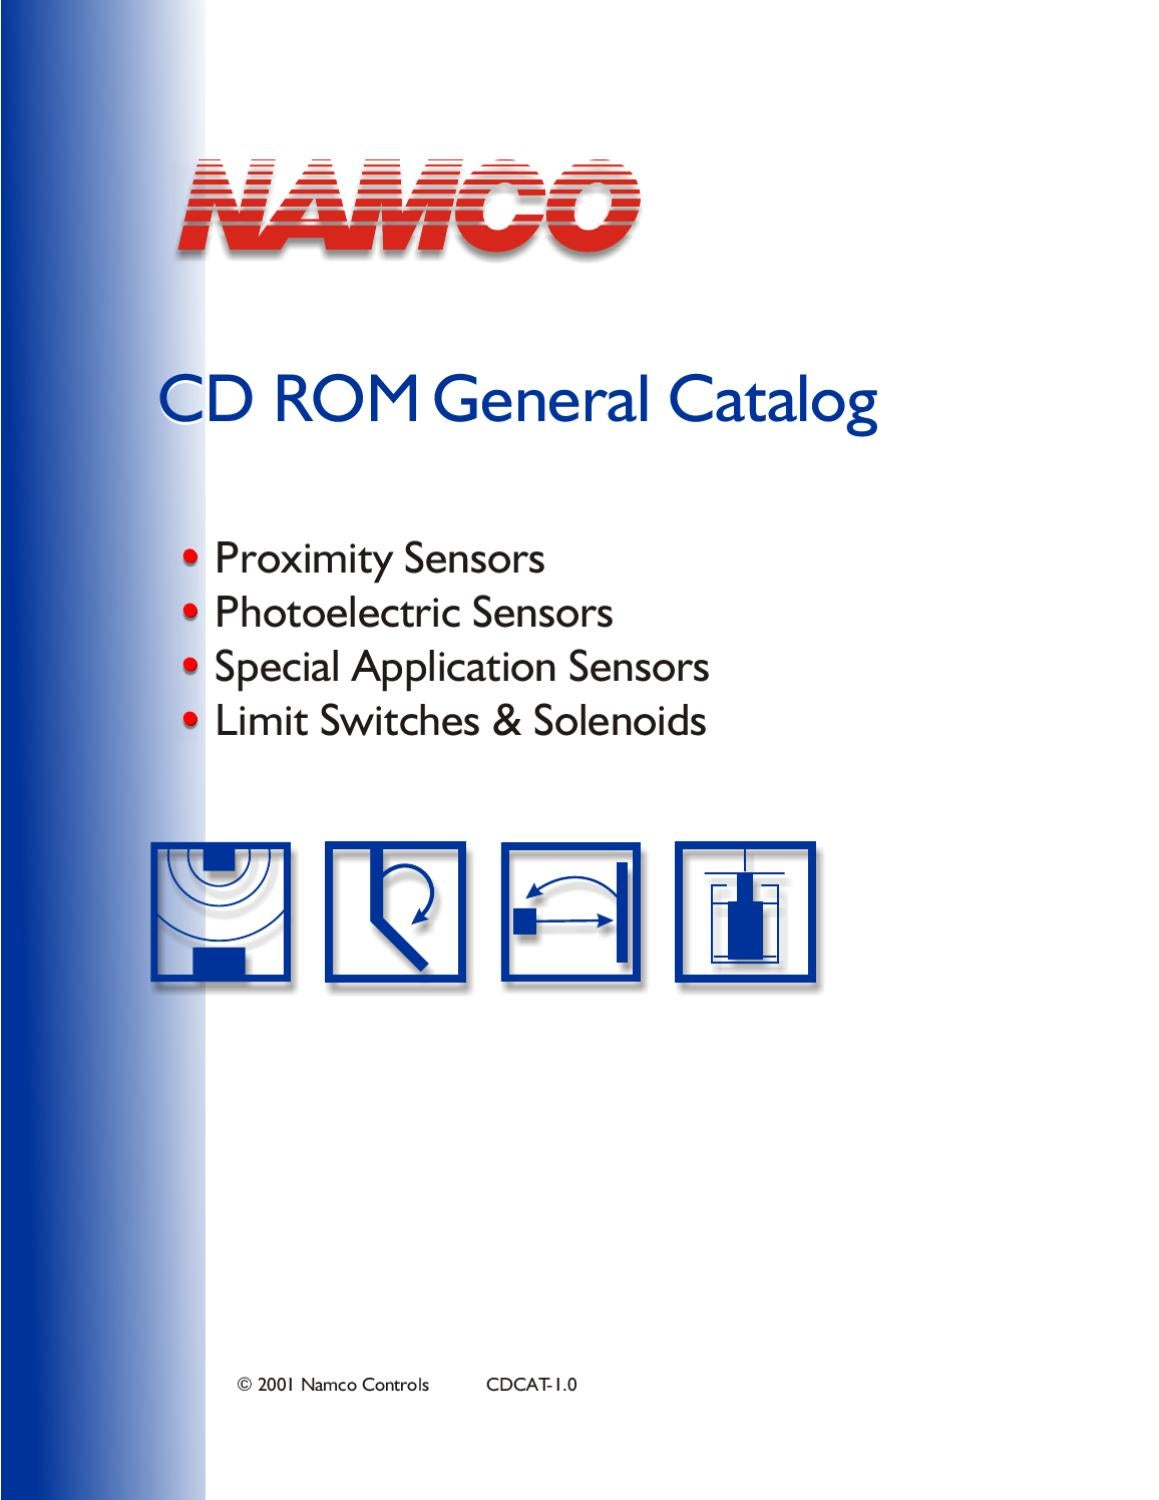 Namco Catalog By Sensit Issuu Wiring Diagram As Well Npn And Pnp Transistor On Prox